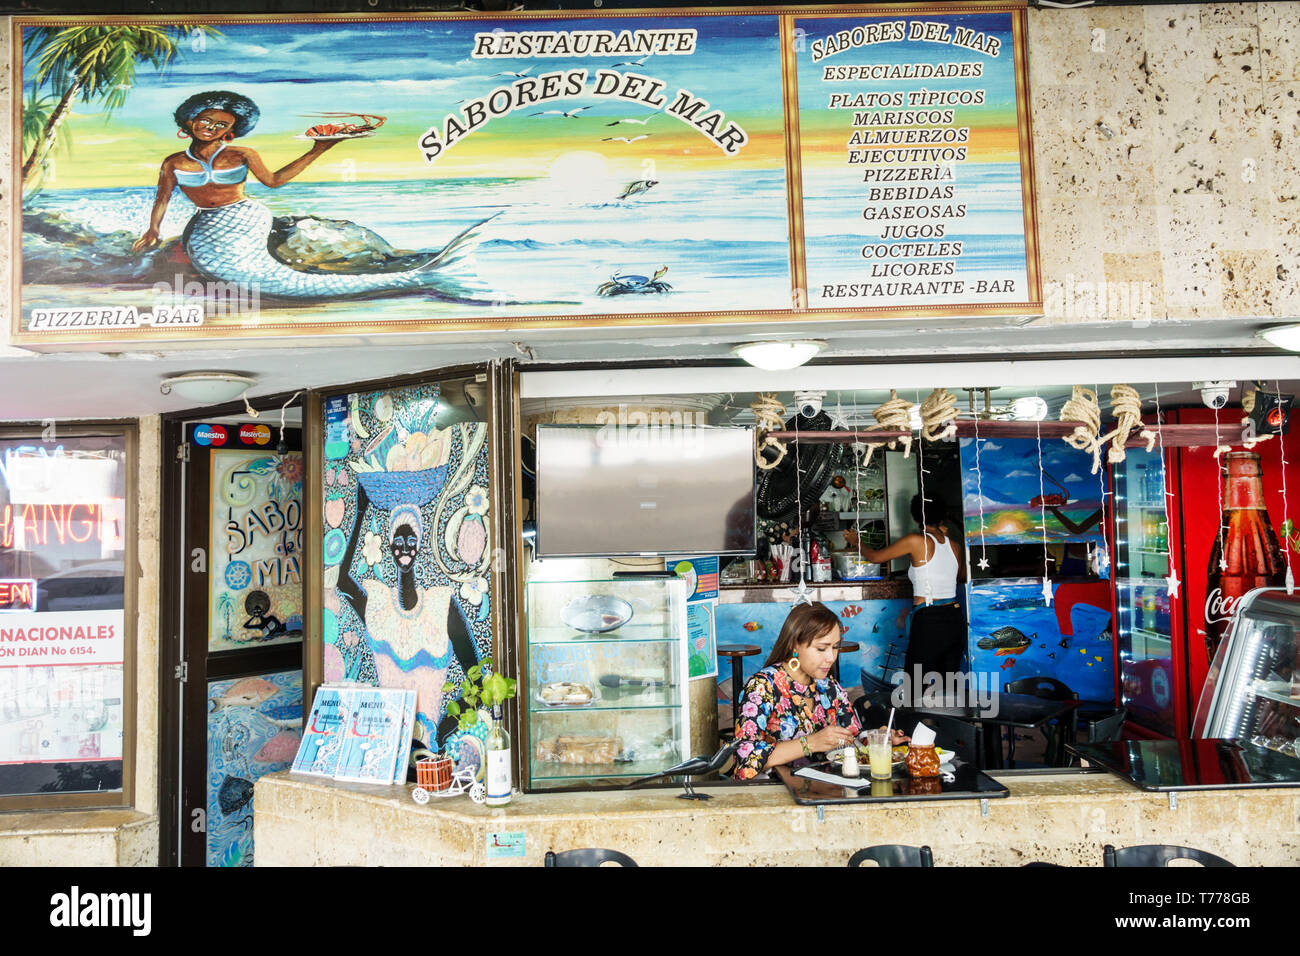 Cartagena Colombia El Laguito restaurant neighborhood family business Sabores del Mar typical food Hispanic resident residents woman eating black merm Stock Photo